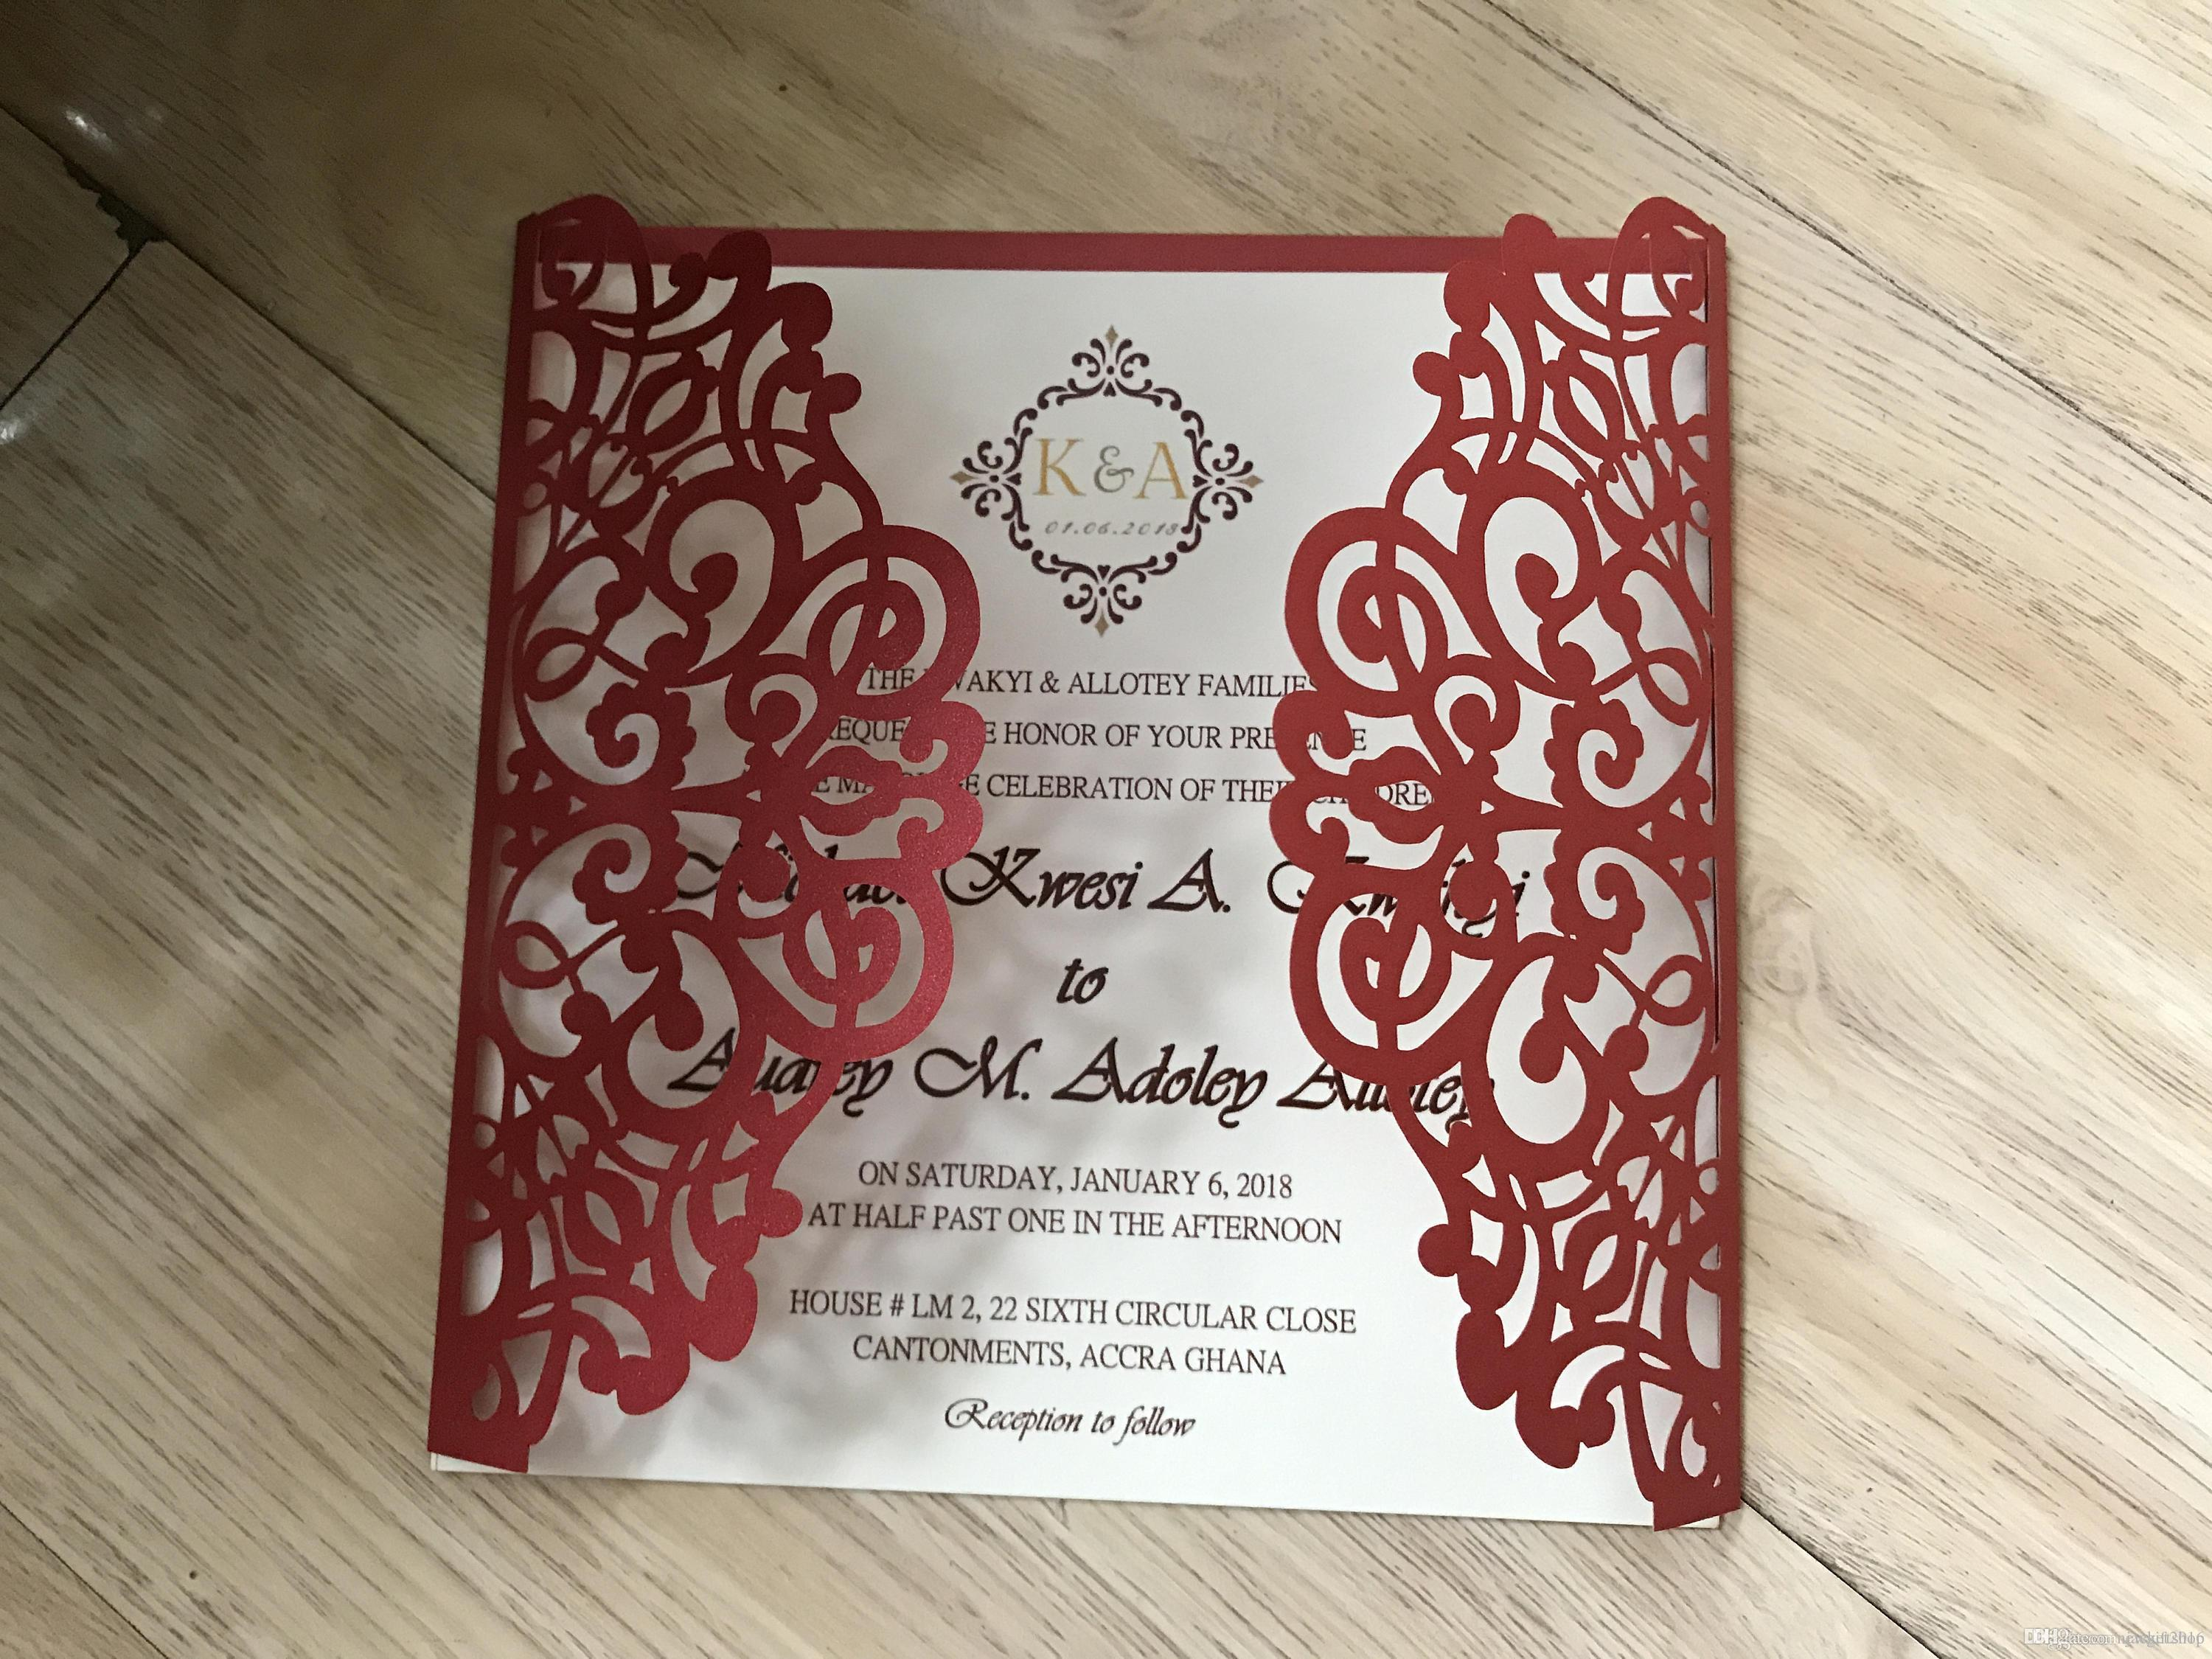 Wedding Invitations Handmade: 2019 Vintage Lace Wedding Invites, Red Handmade Laser Cut